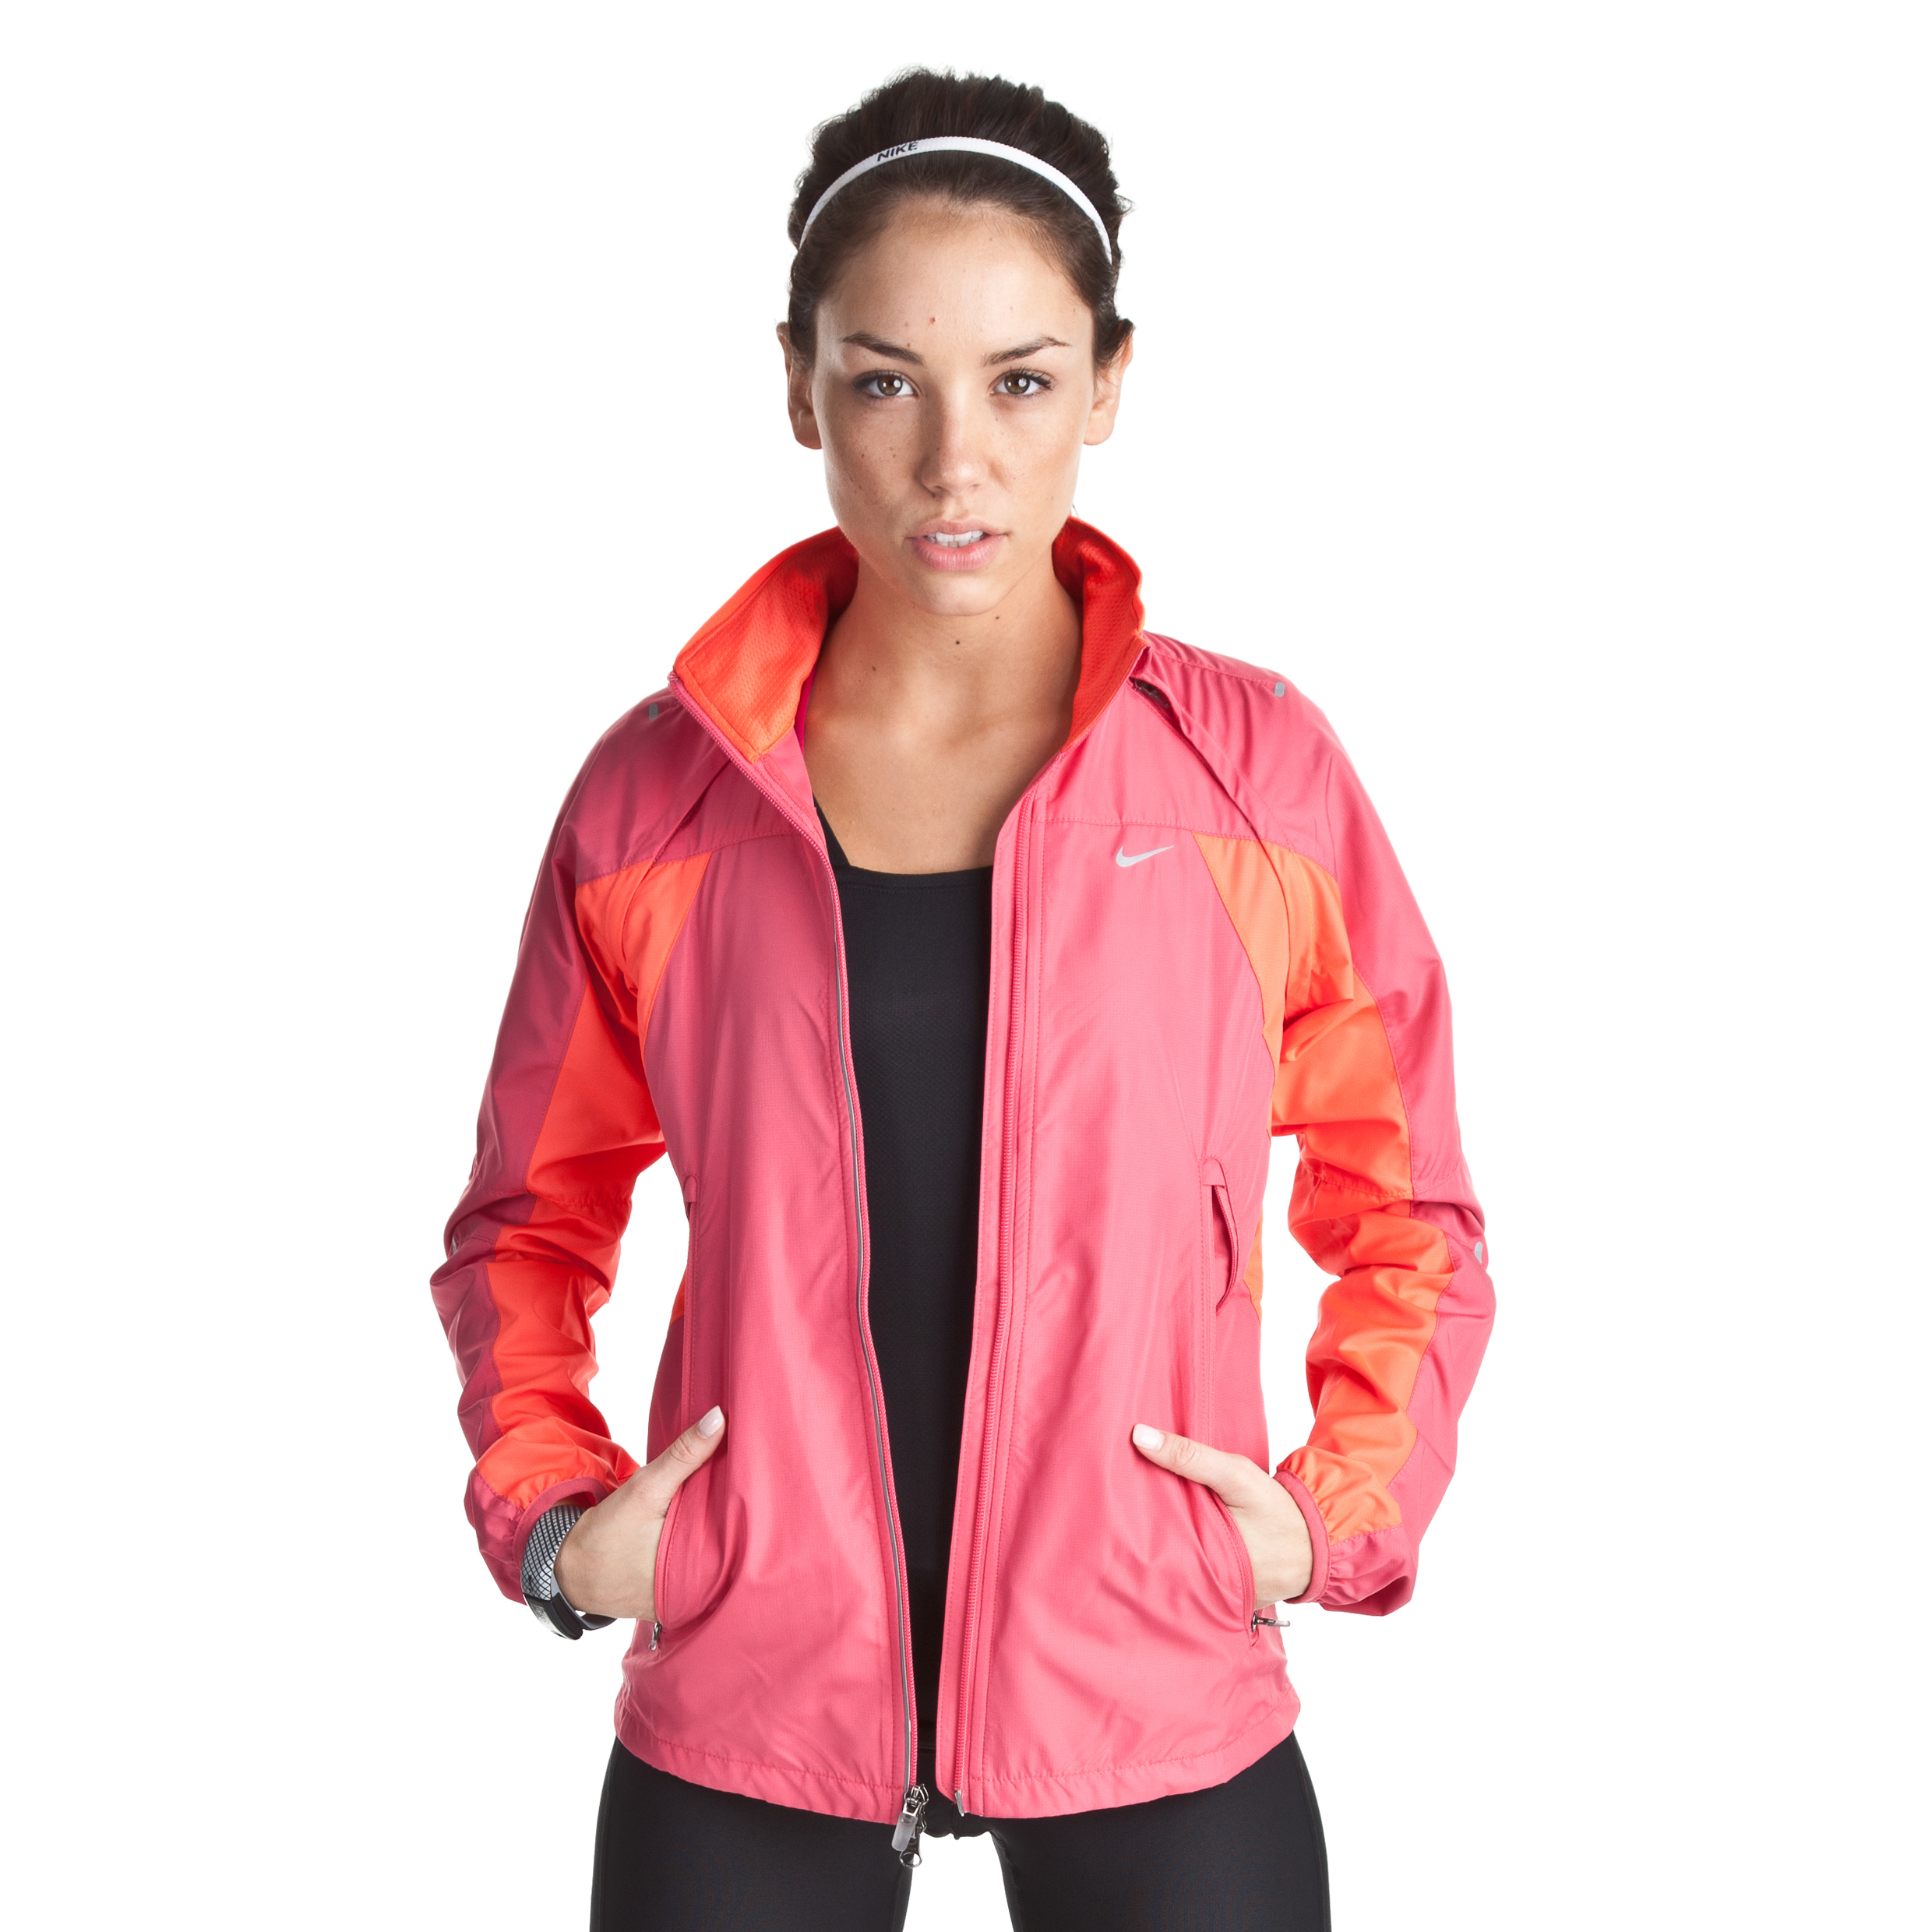 Nike Shifter Jacket - Pink Clay/Bright Crimson/Reflective Silv - Womens